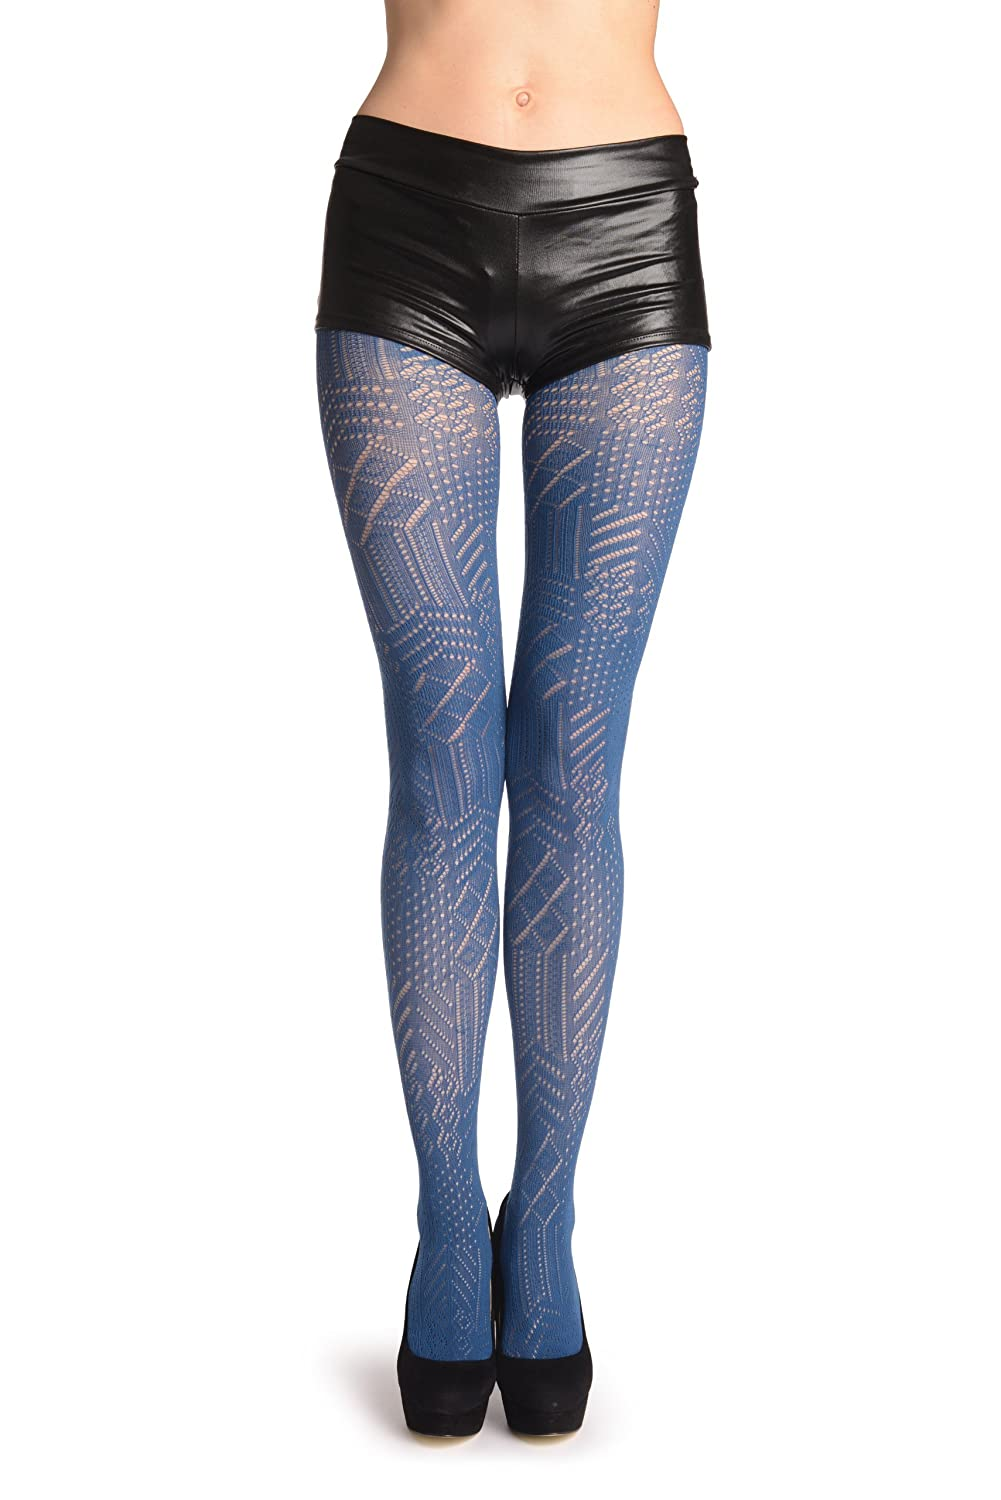 c5cef30e370 Navy Blue Geometrical Crochet Lace - Pantyhose (Tights) at Amazon Women s  Clothing store